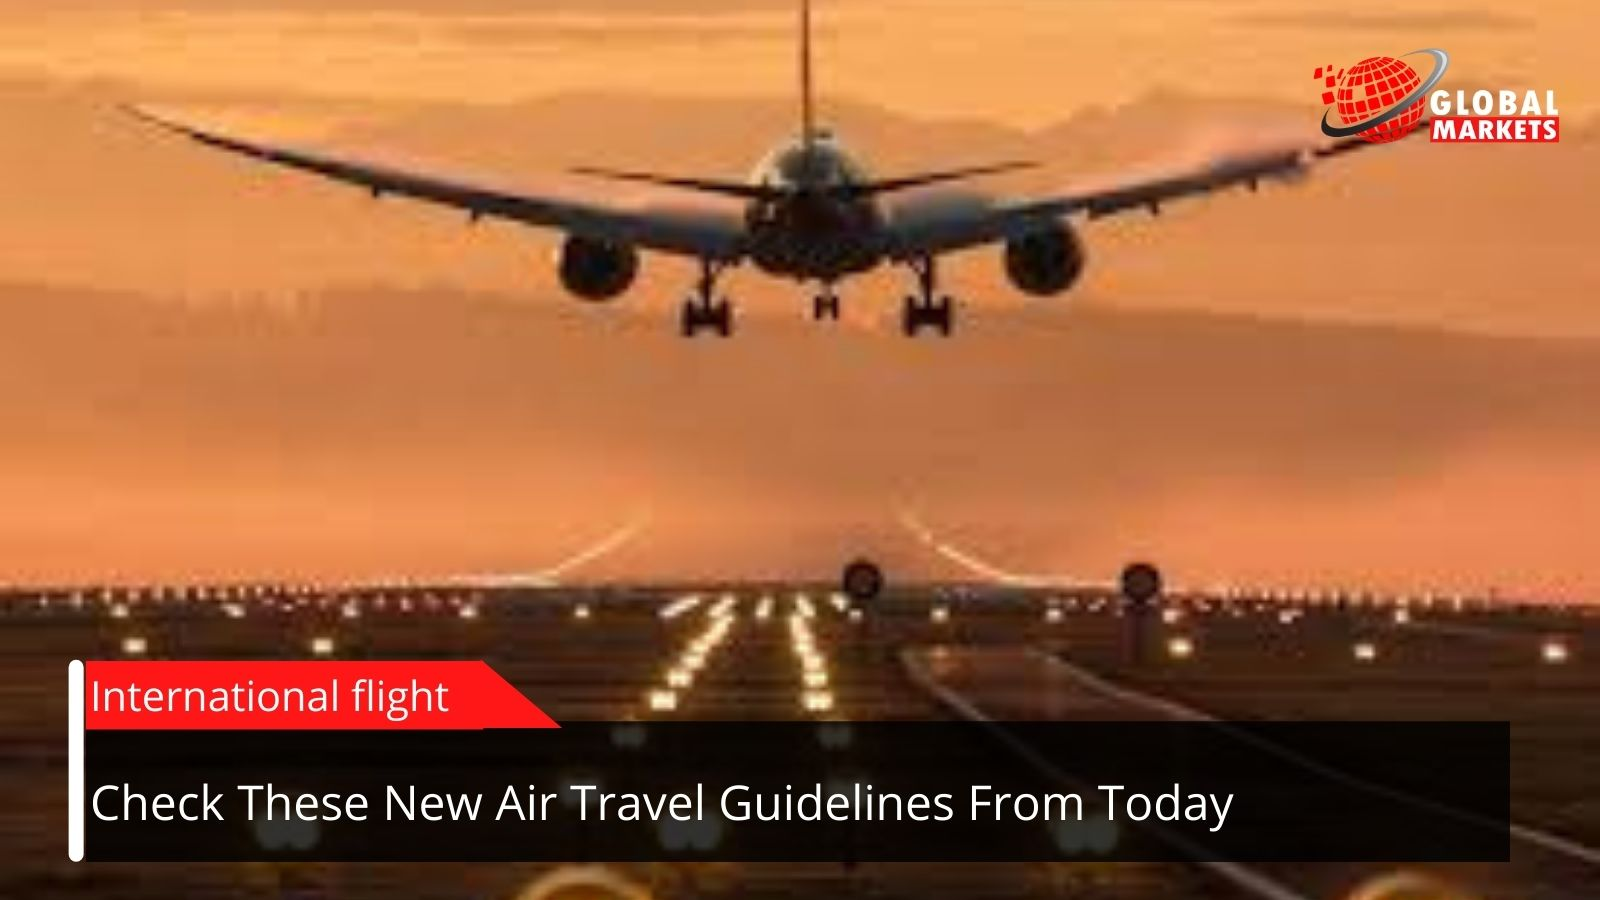 Worldwide Flights: Check These New Air Travel Guidelines From Today